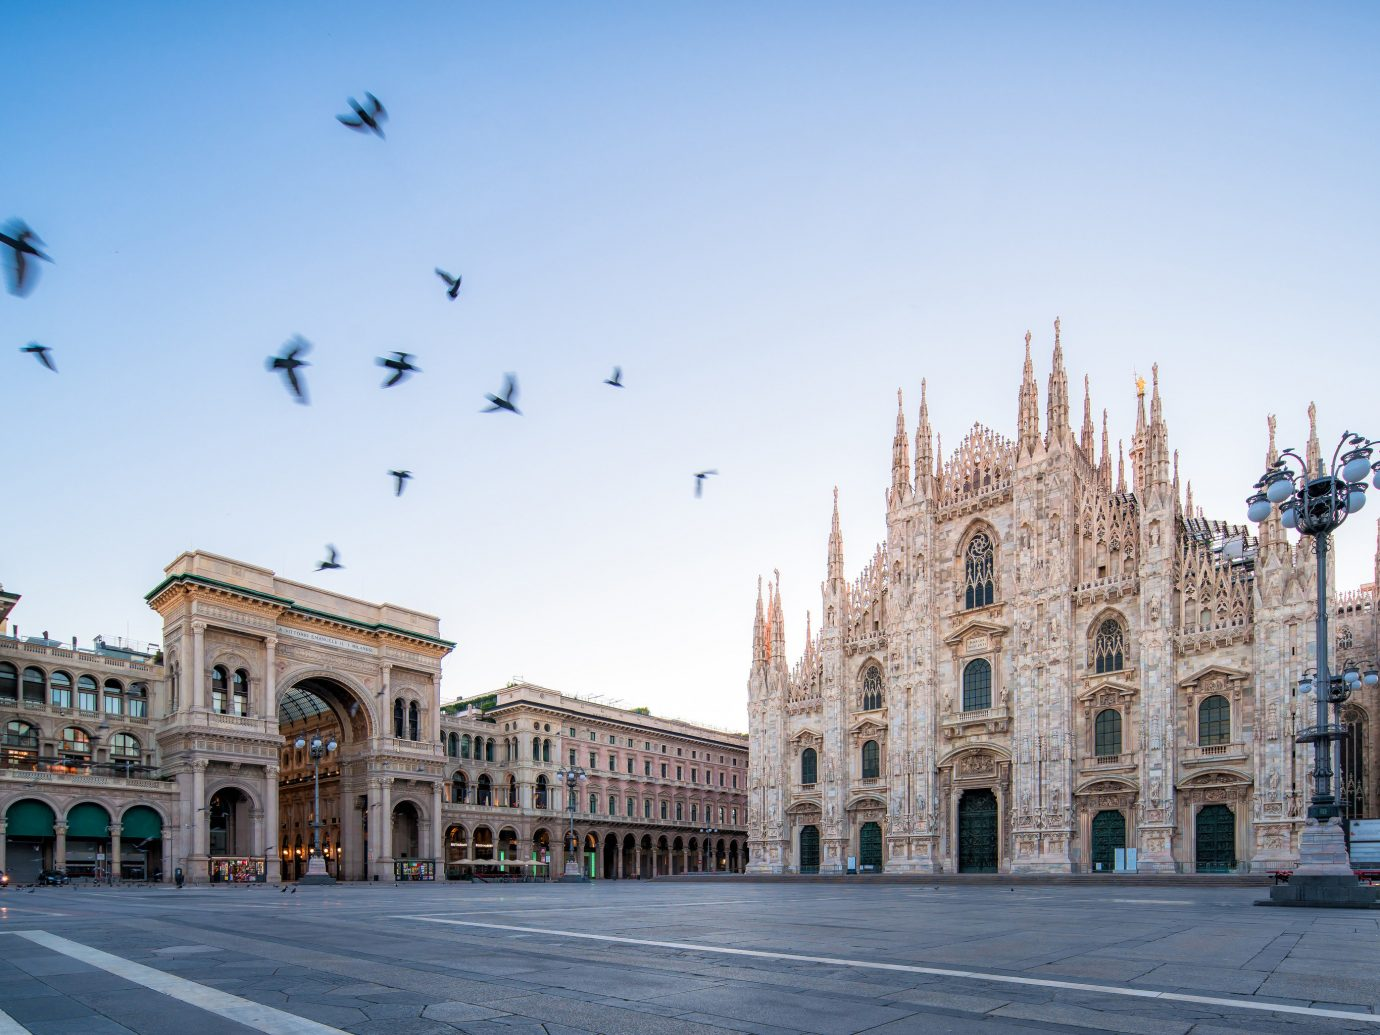 Arts + Culture Italy Milan Trip Ideas sky landmark town square Town plaza City urban area building metropolis daytime metropolitan area palace facade tourist attraction Downtown street tree